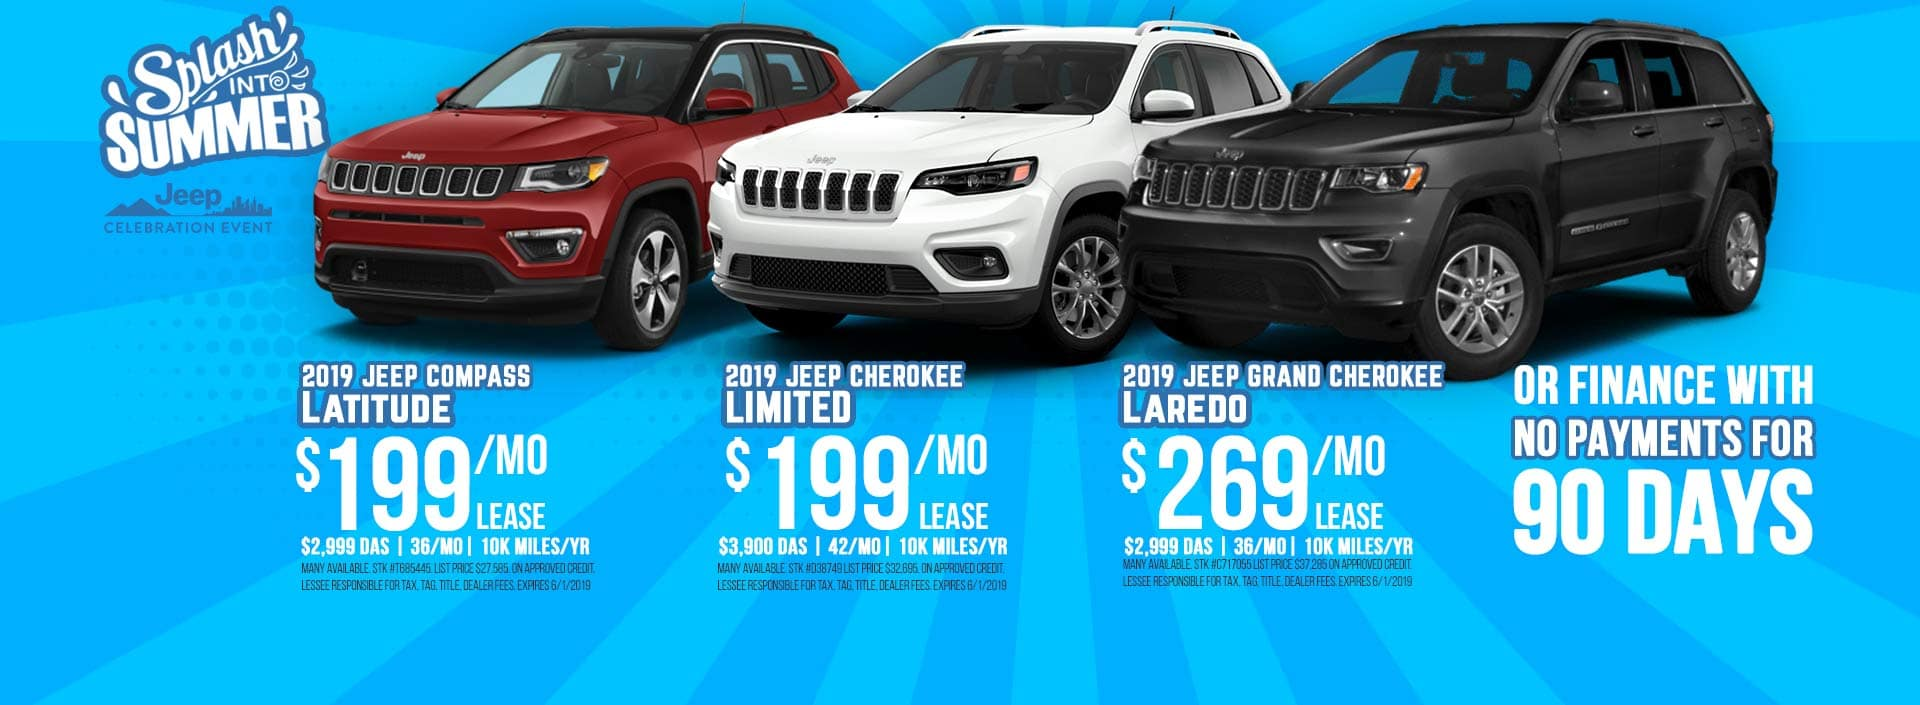 Jeep Compass Jeep Cherokee Jeep Grand Cherokee Sale